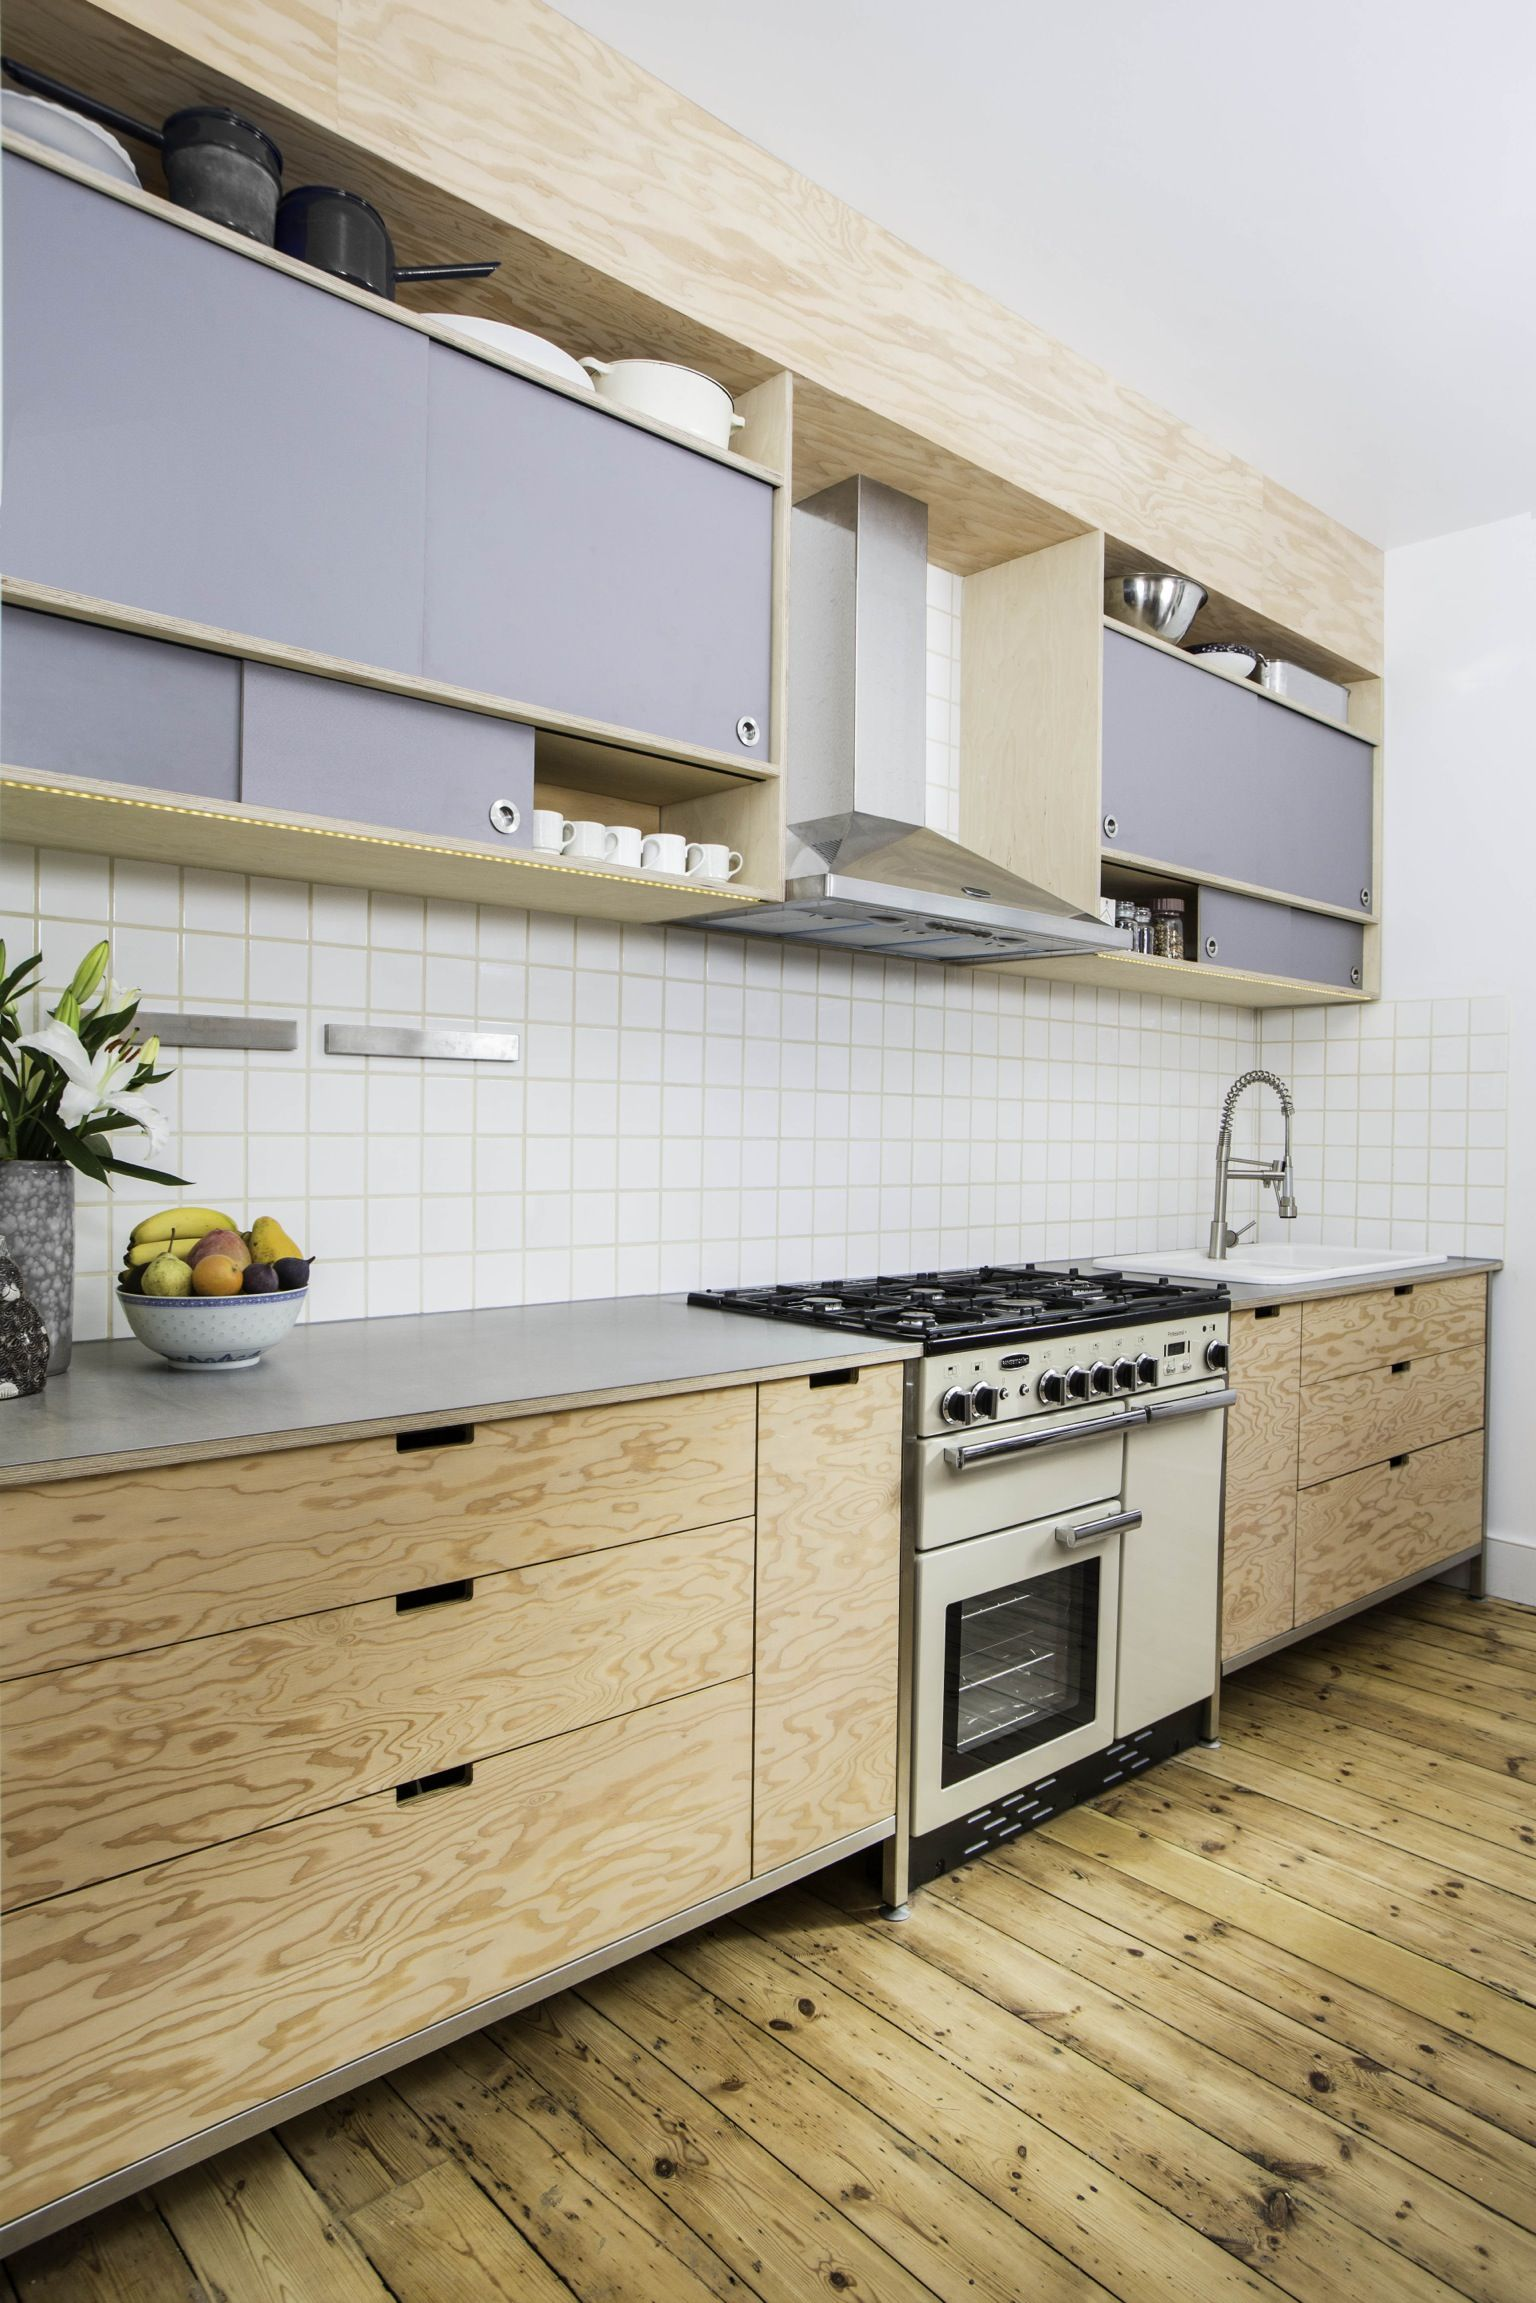 Douglas Fir Plywood And Stainless Steel Kitchen Modern Kitchen Set Modern Kitchen Mid Century Modern Kitchen